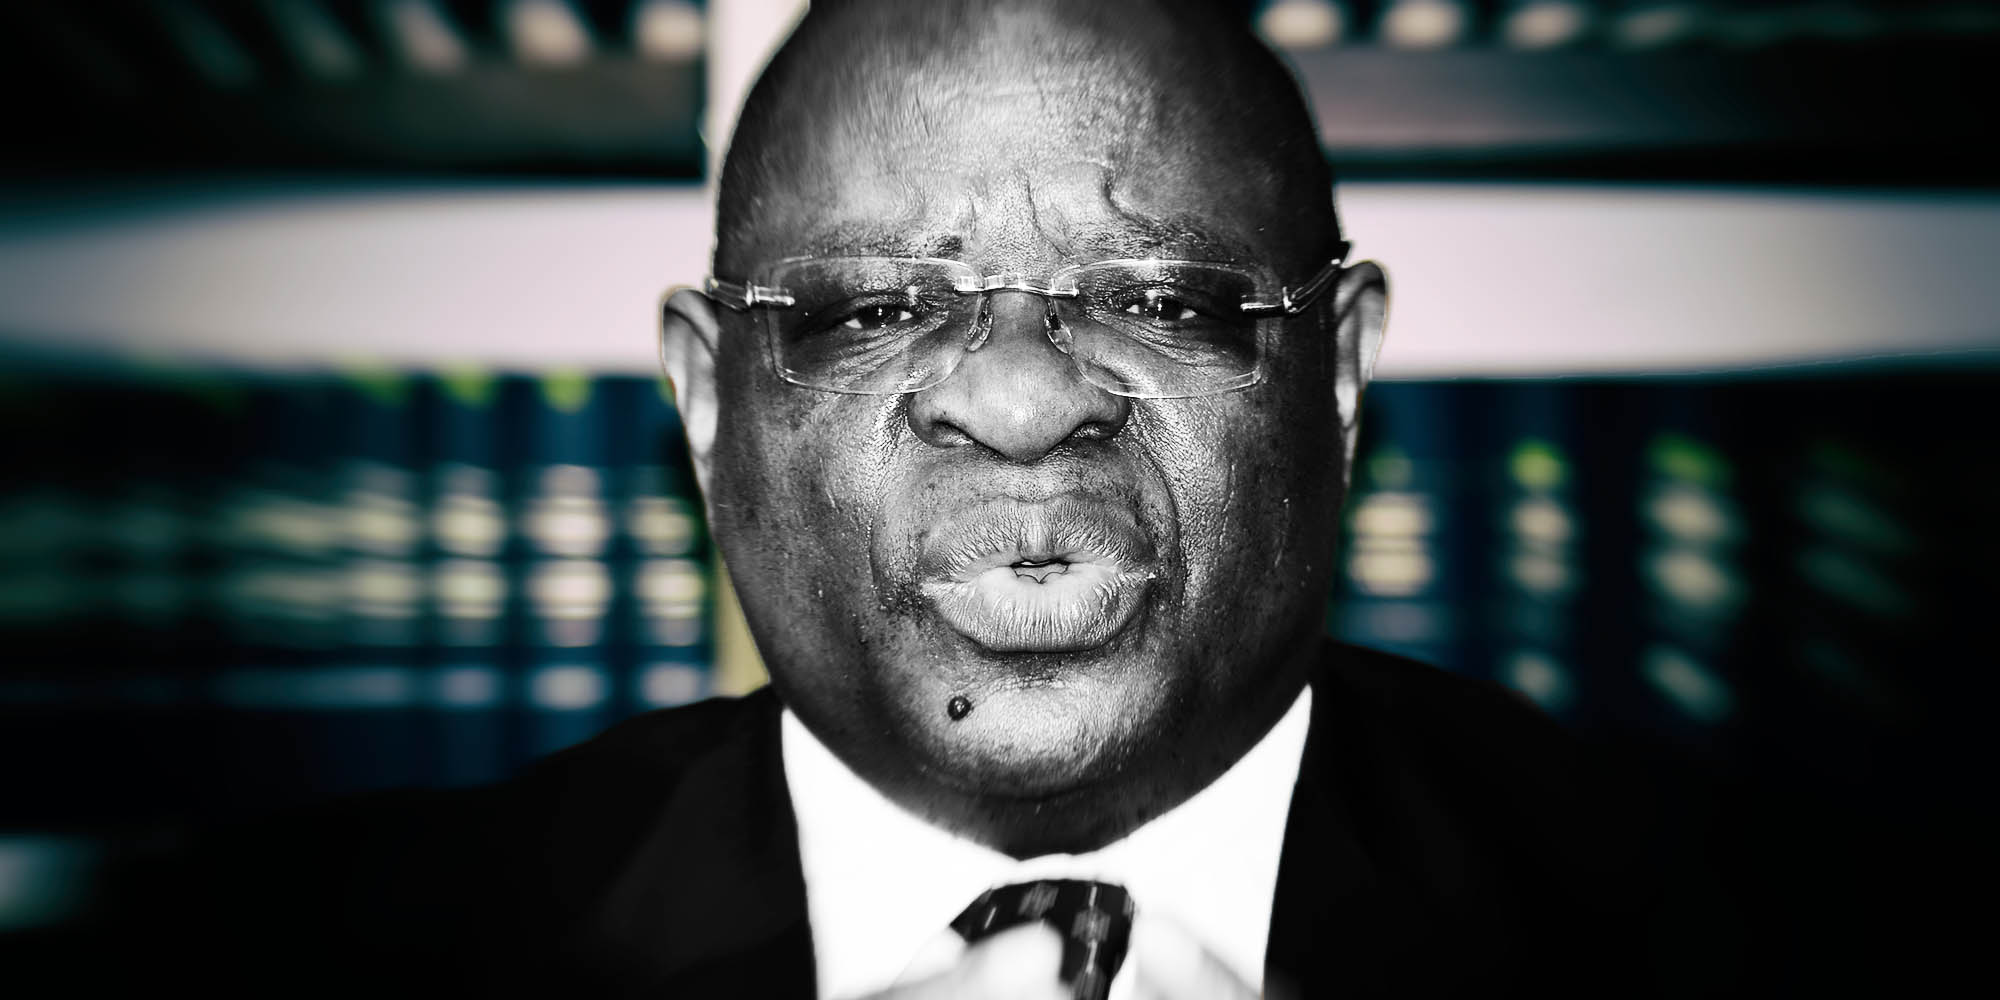 Newsflash: Zondo commission granted until March 2021 to finish work - Daily Maverick